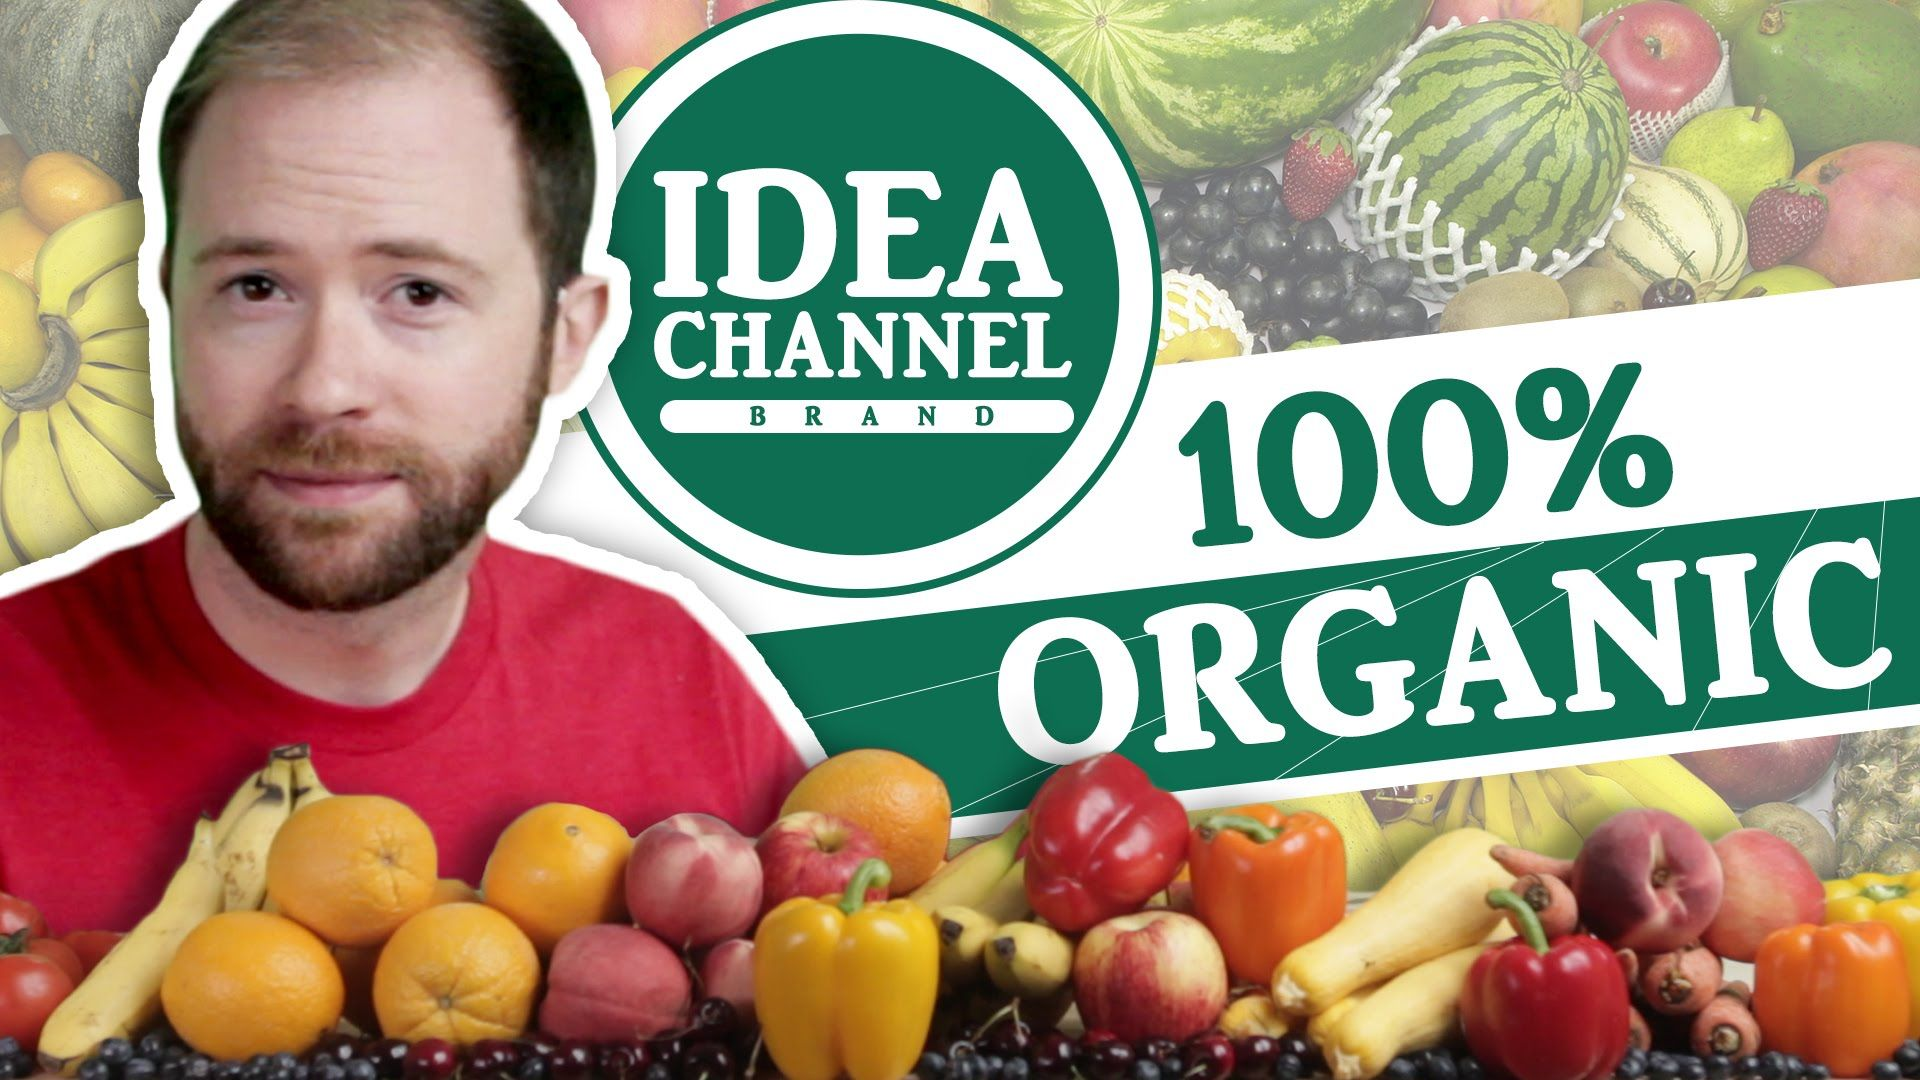 100% Organic Idea Channel Episode | Idea Channel | PBS Digital Studios